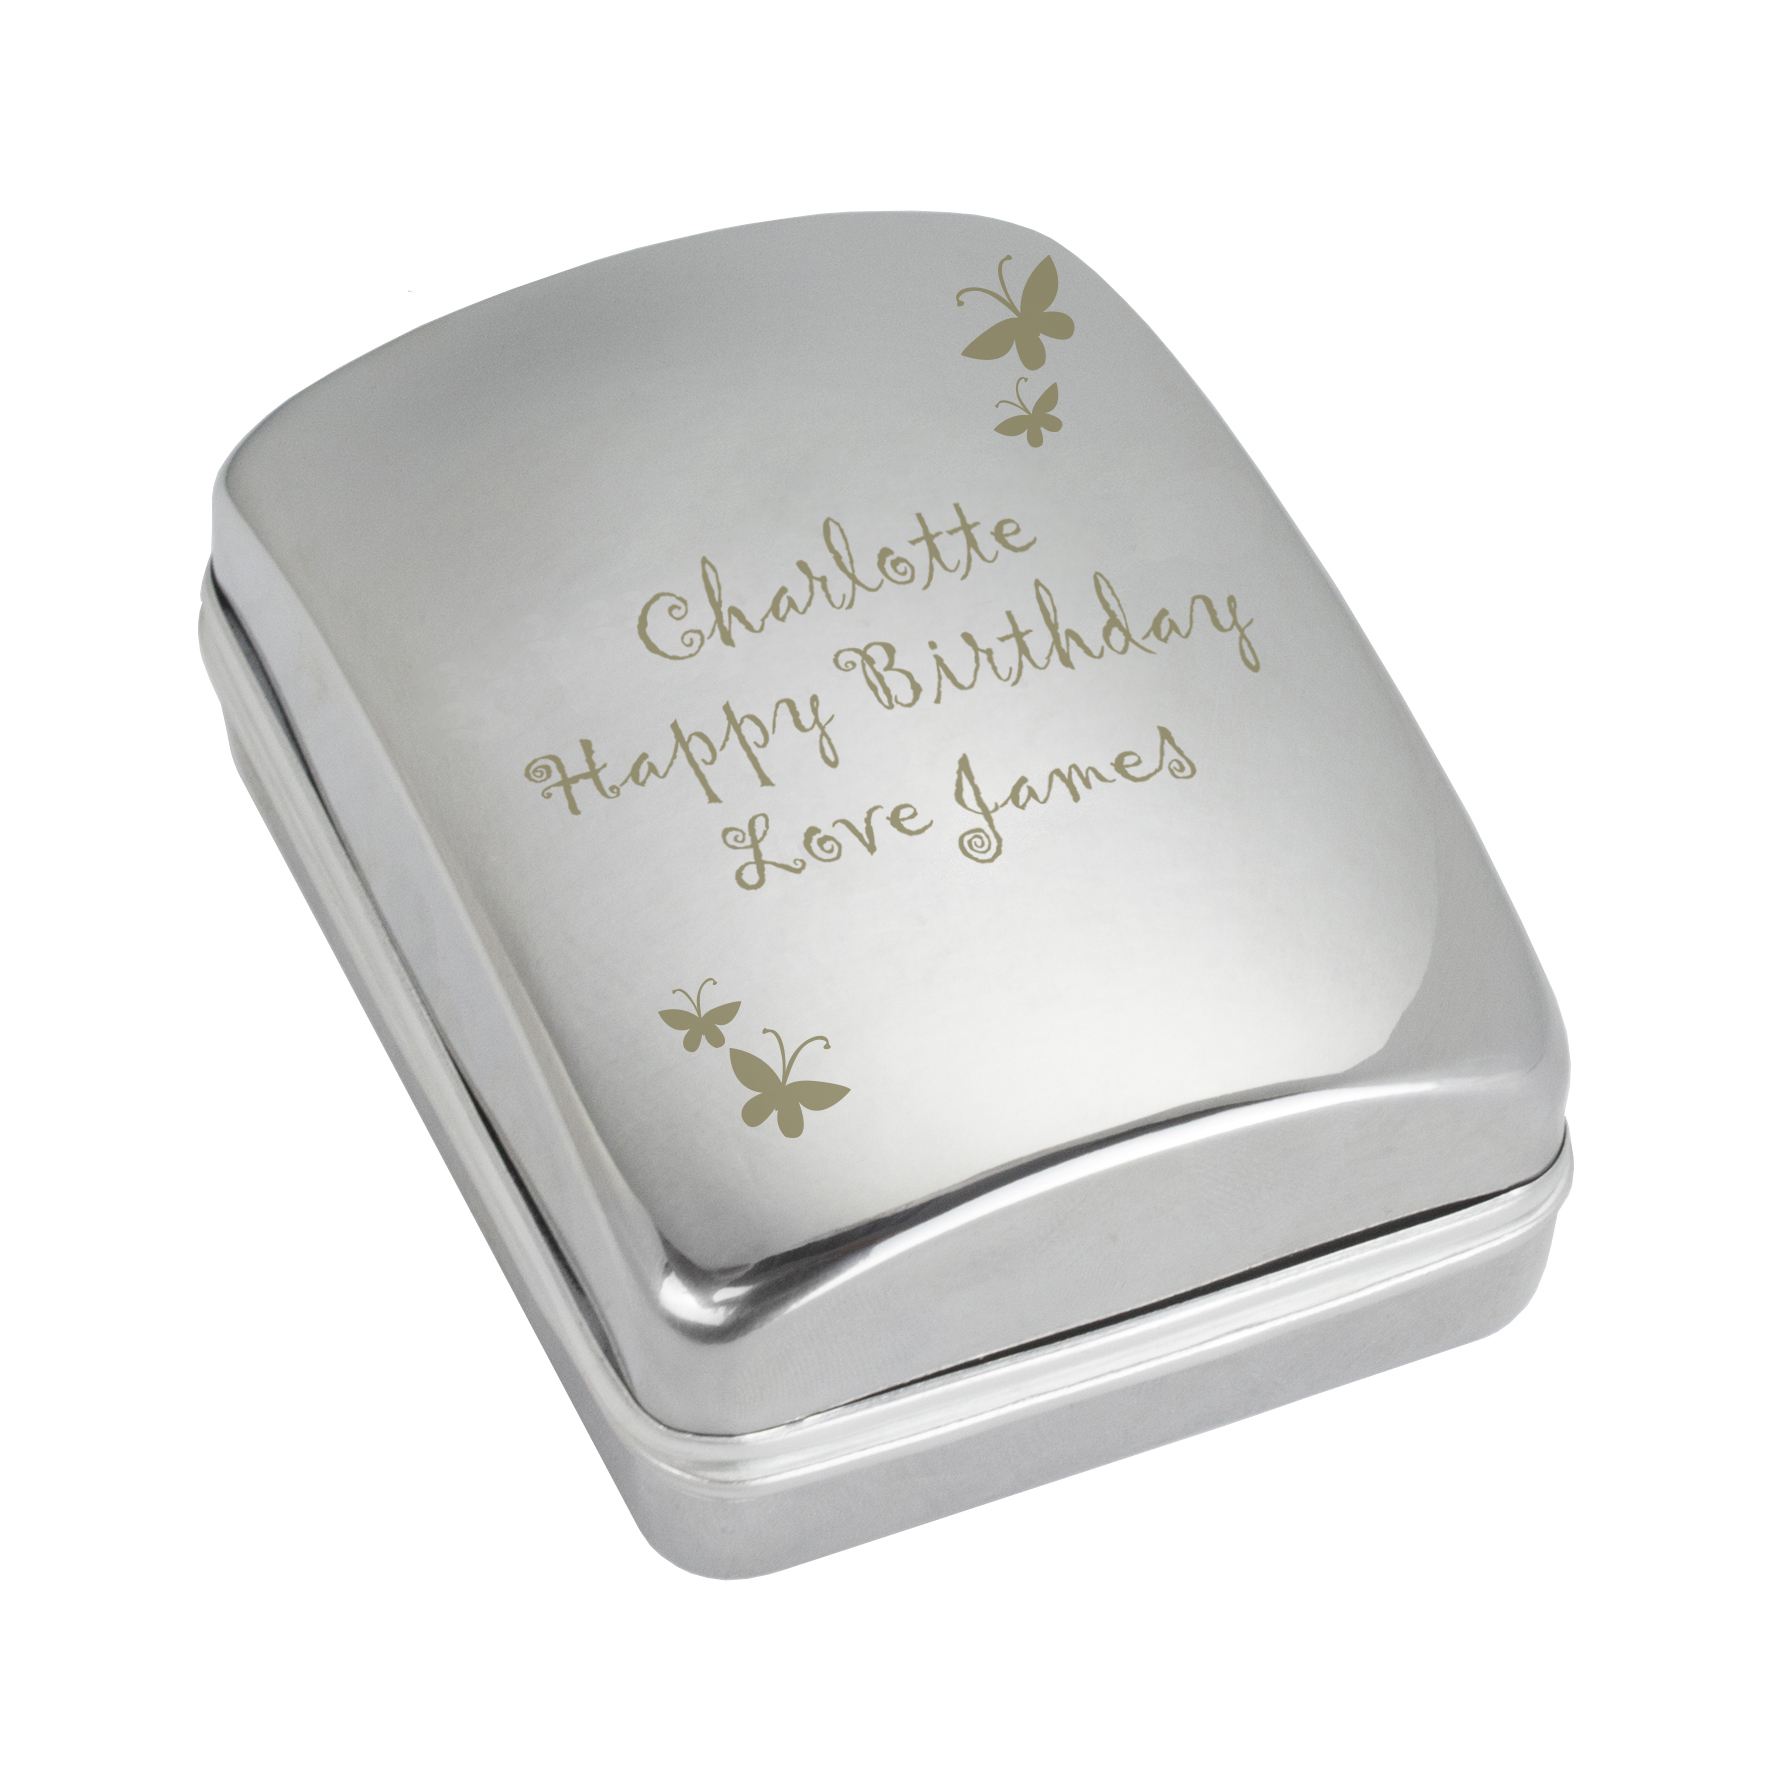 Engraved Butterfly Motif Necklace Box with Heart Necklace